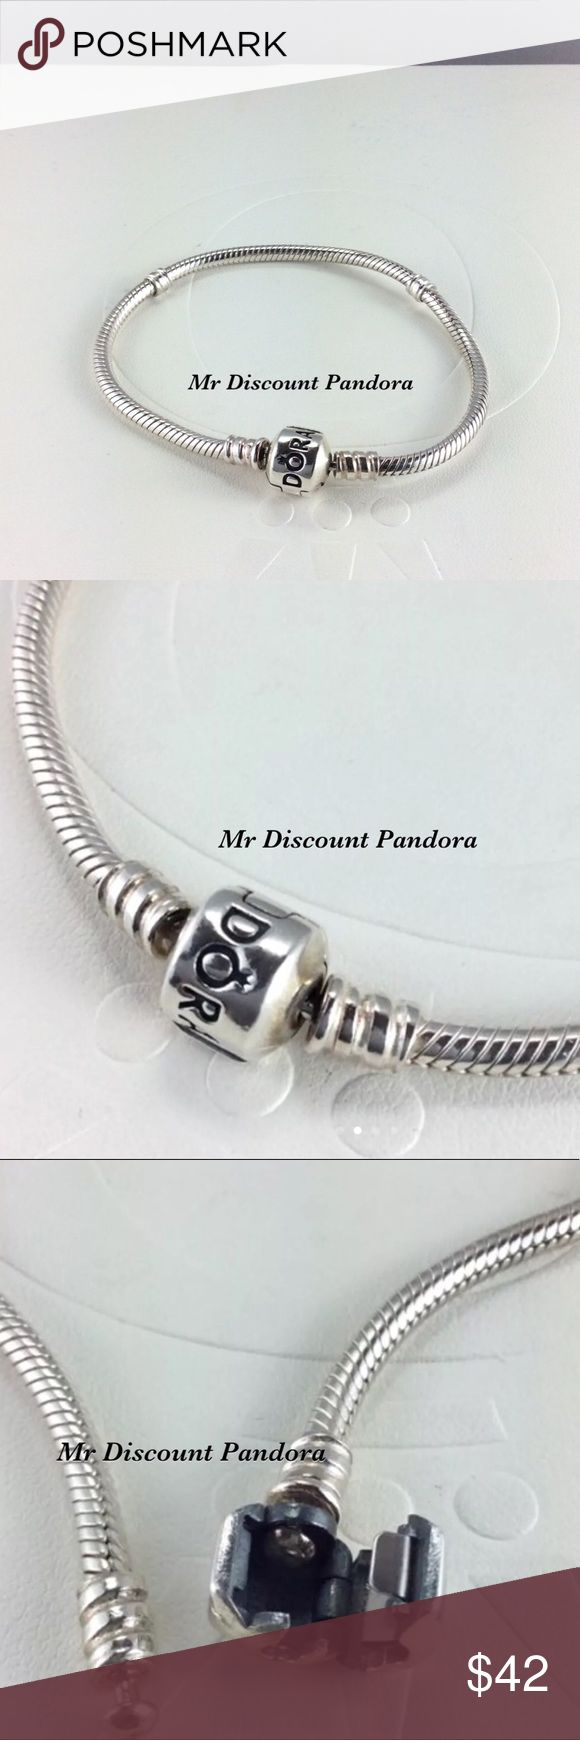 """6.9"""" Pandora Iconic Silver Bracelet This sterling silver charm bracelet is the most popular PANDORA bracelet. Its design features a barrel charm clasp and our innovative threading system, which makes it easy to screw PANDORA charms onto your bracelet and keep them securely where you want them. This is the perfect style to start or add to your charm collection.  Condition: Gently used (Not stiff)  Retail new $70.00 including taxes  Add a Pandora box for $4 more  Bundle/Offer for discount…"""